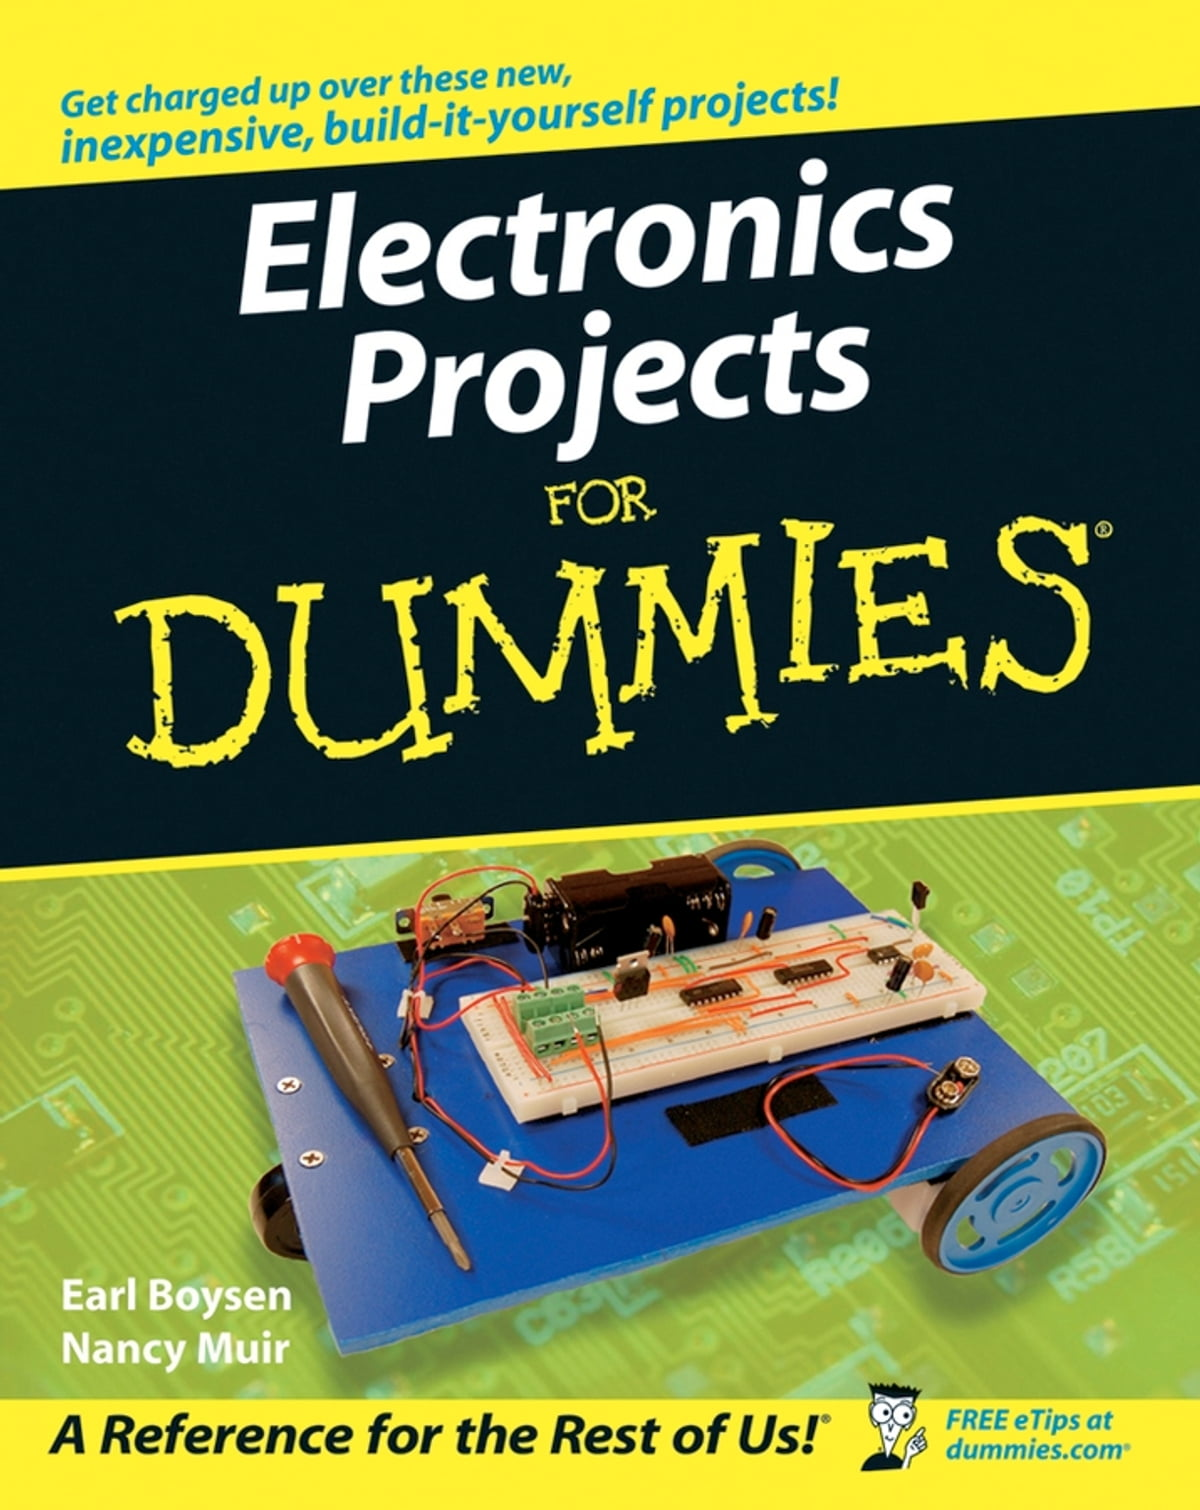 Electronics Projects For Dummies Ebook By Earl Boysen New Electronic Circuit 9781118044025 Rakuten Kobo